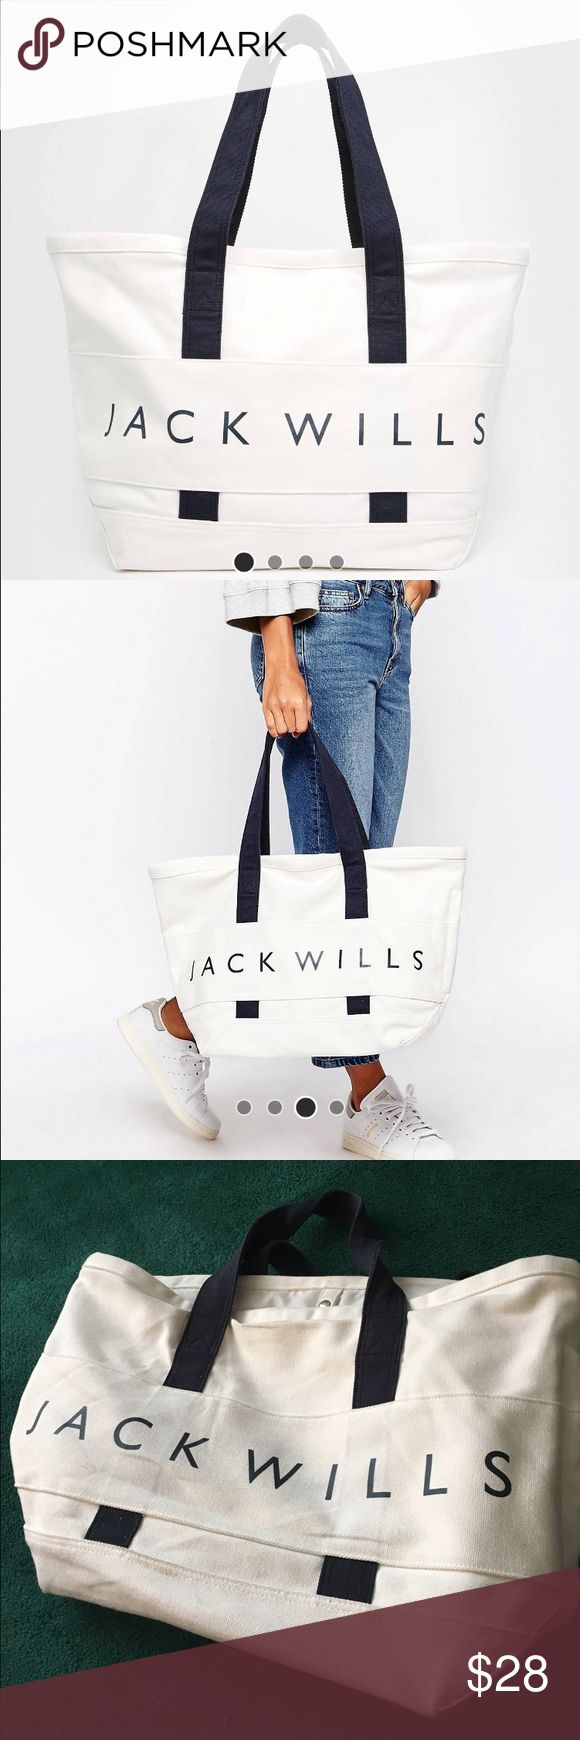 Jack Wills Weekender Bag Good condition, a little worn but only used a couple time. Make an offer! Purchased from asos Jack Wills Bags Travel Bags